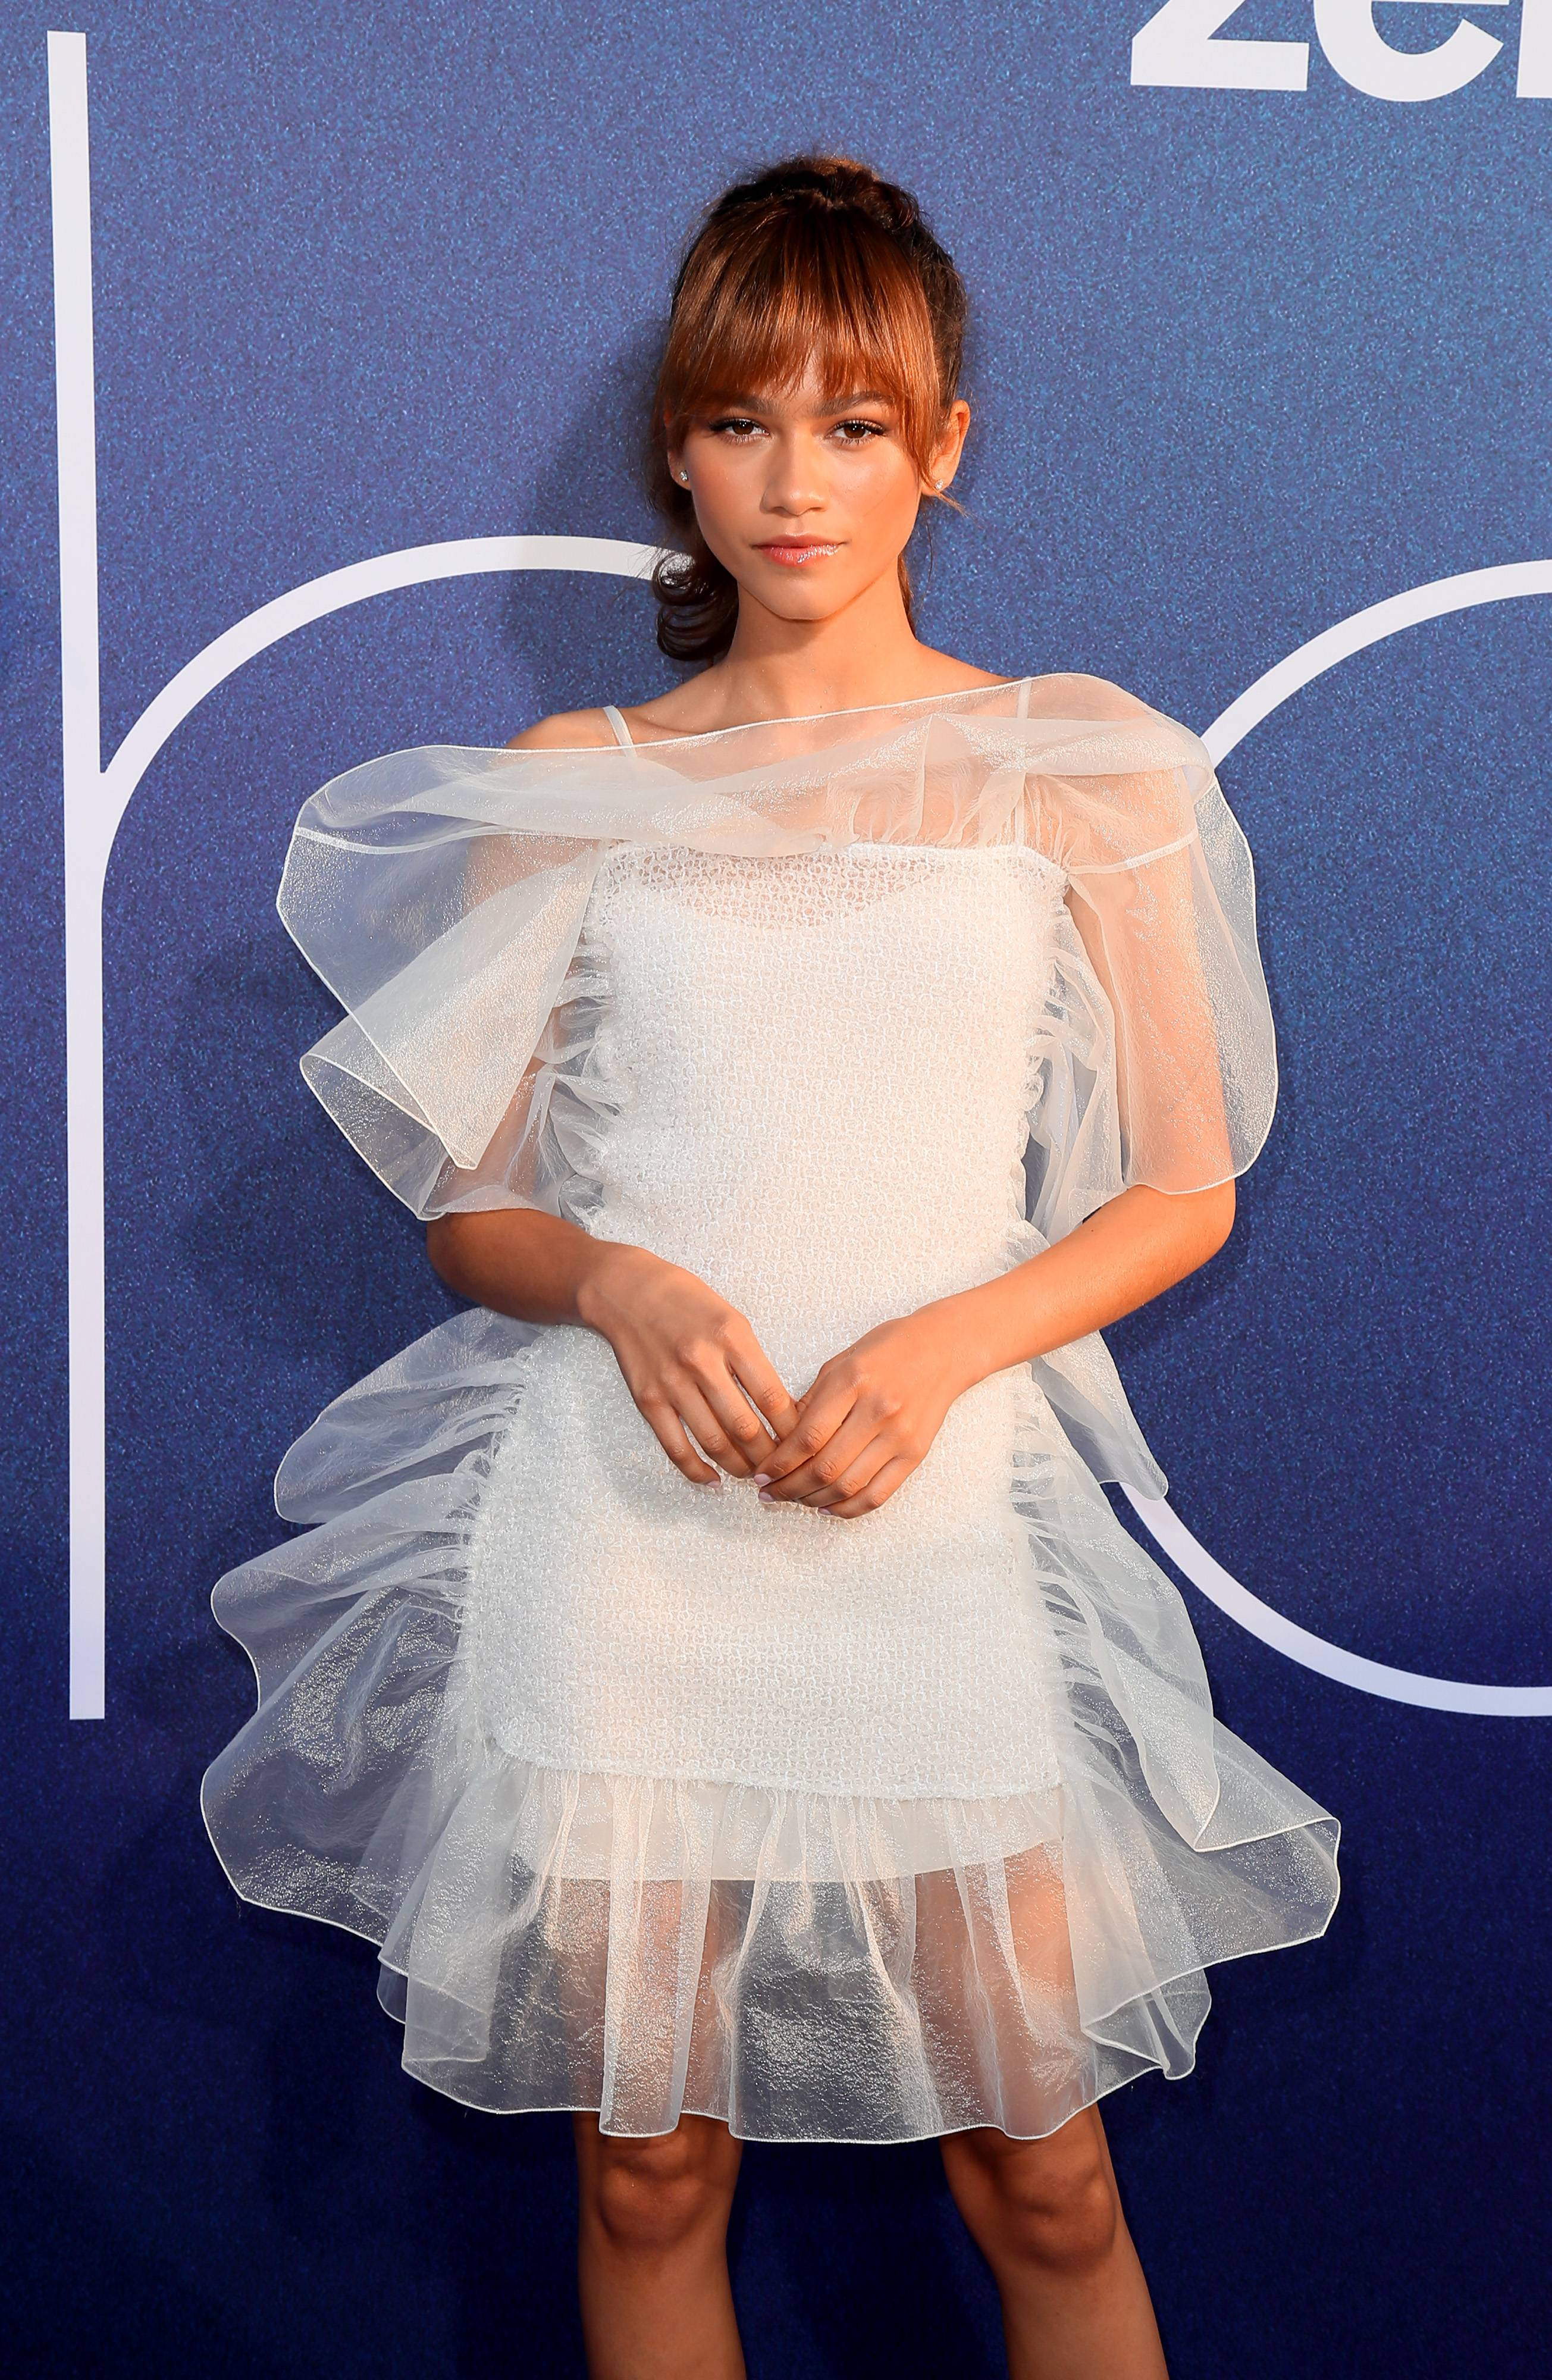 Zinkerbell - Zendaya is legit the fairy princess Barbie we all wished we had growing up! The fashion killer stepped out in an delicate, white, tulle and mesh Nina RicciFW19 Ready-To-Wear gown at the premiere of her new HBO show, Euphoria. (Photo: Leon Bennett/WireImage)